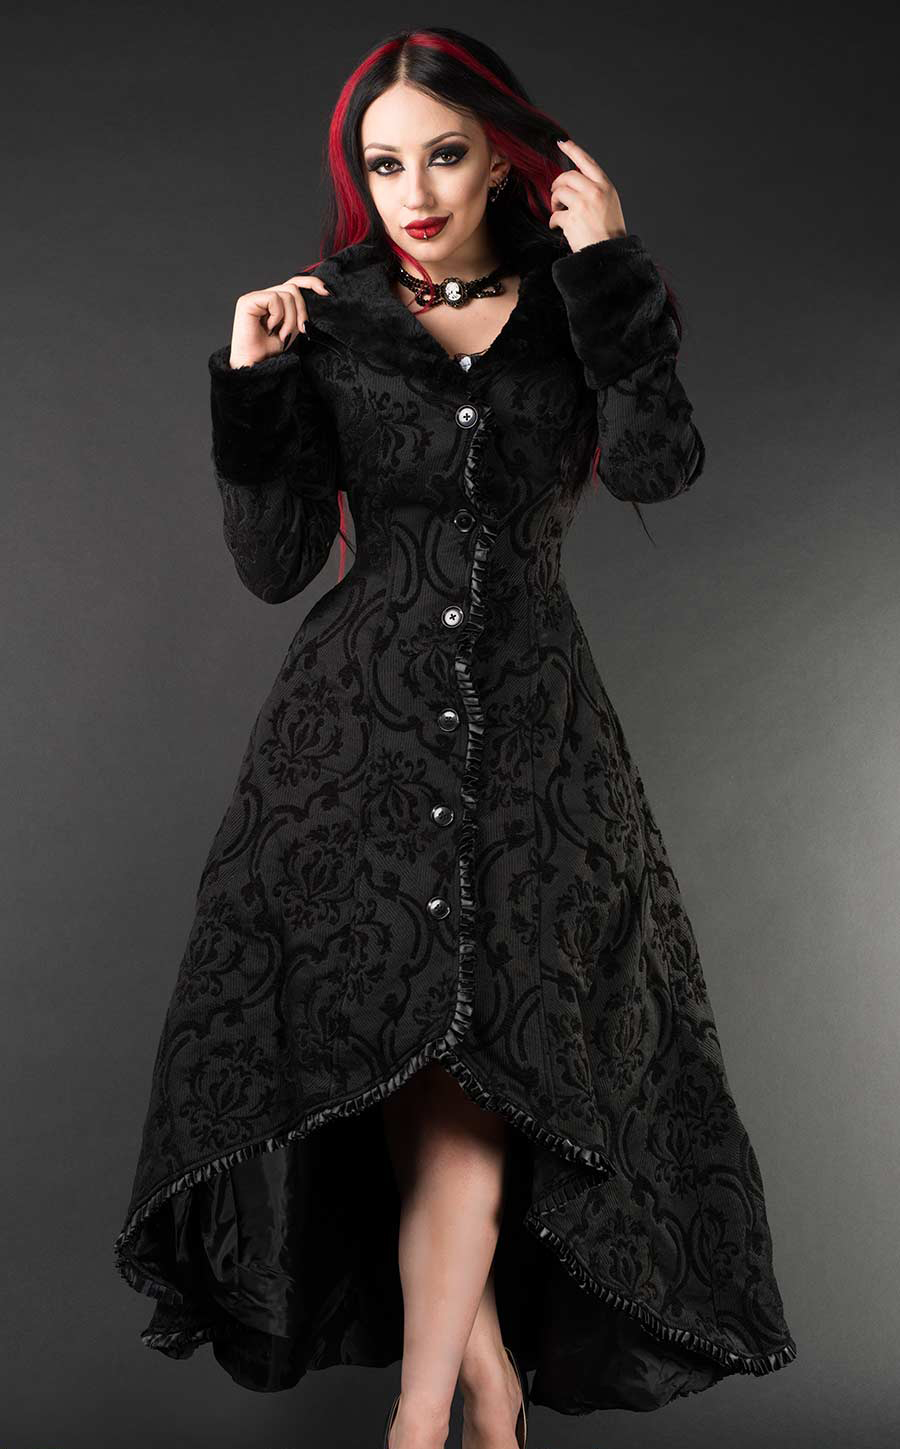 rebelsmarket_ladies_black_jacquard_victorian_gothic_long_fur_trim_winter_coat_9_to_ship_coats_4.jpg